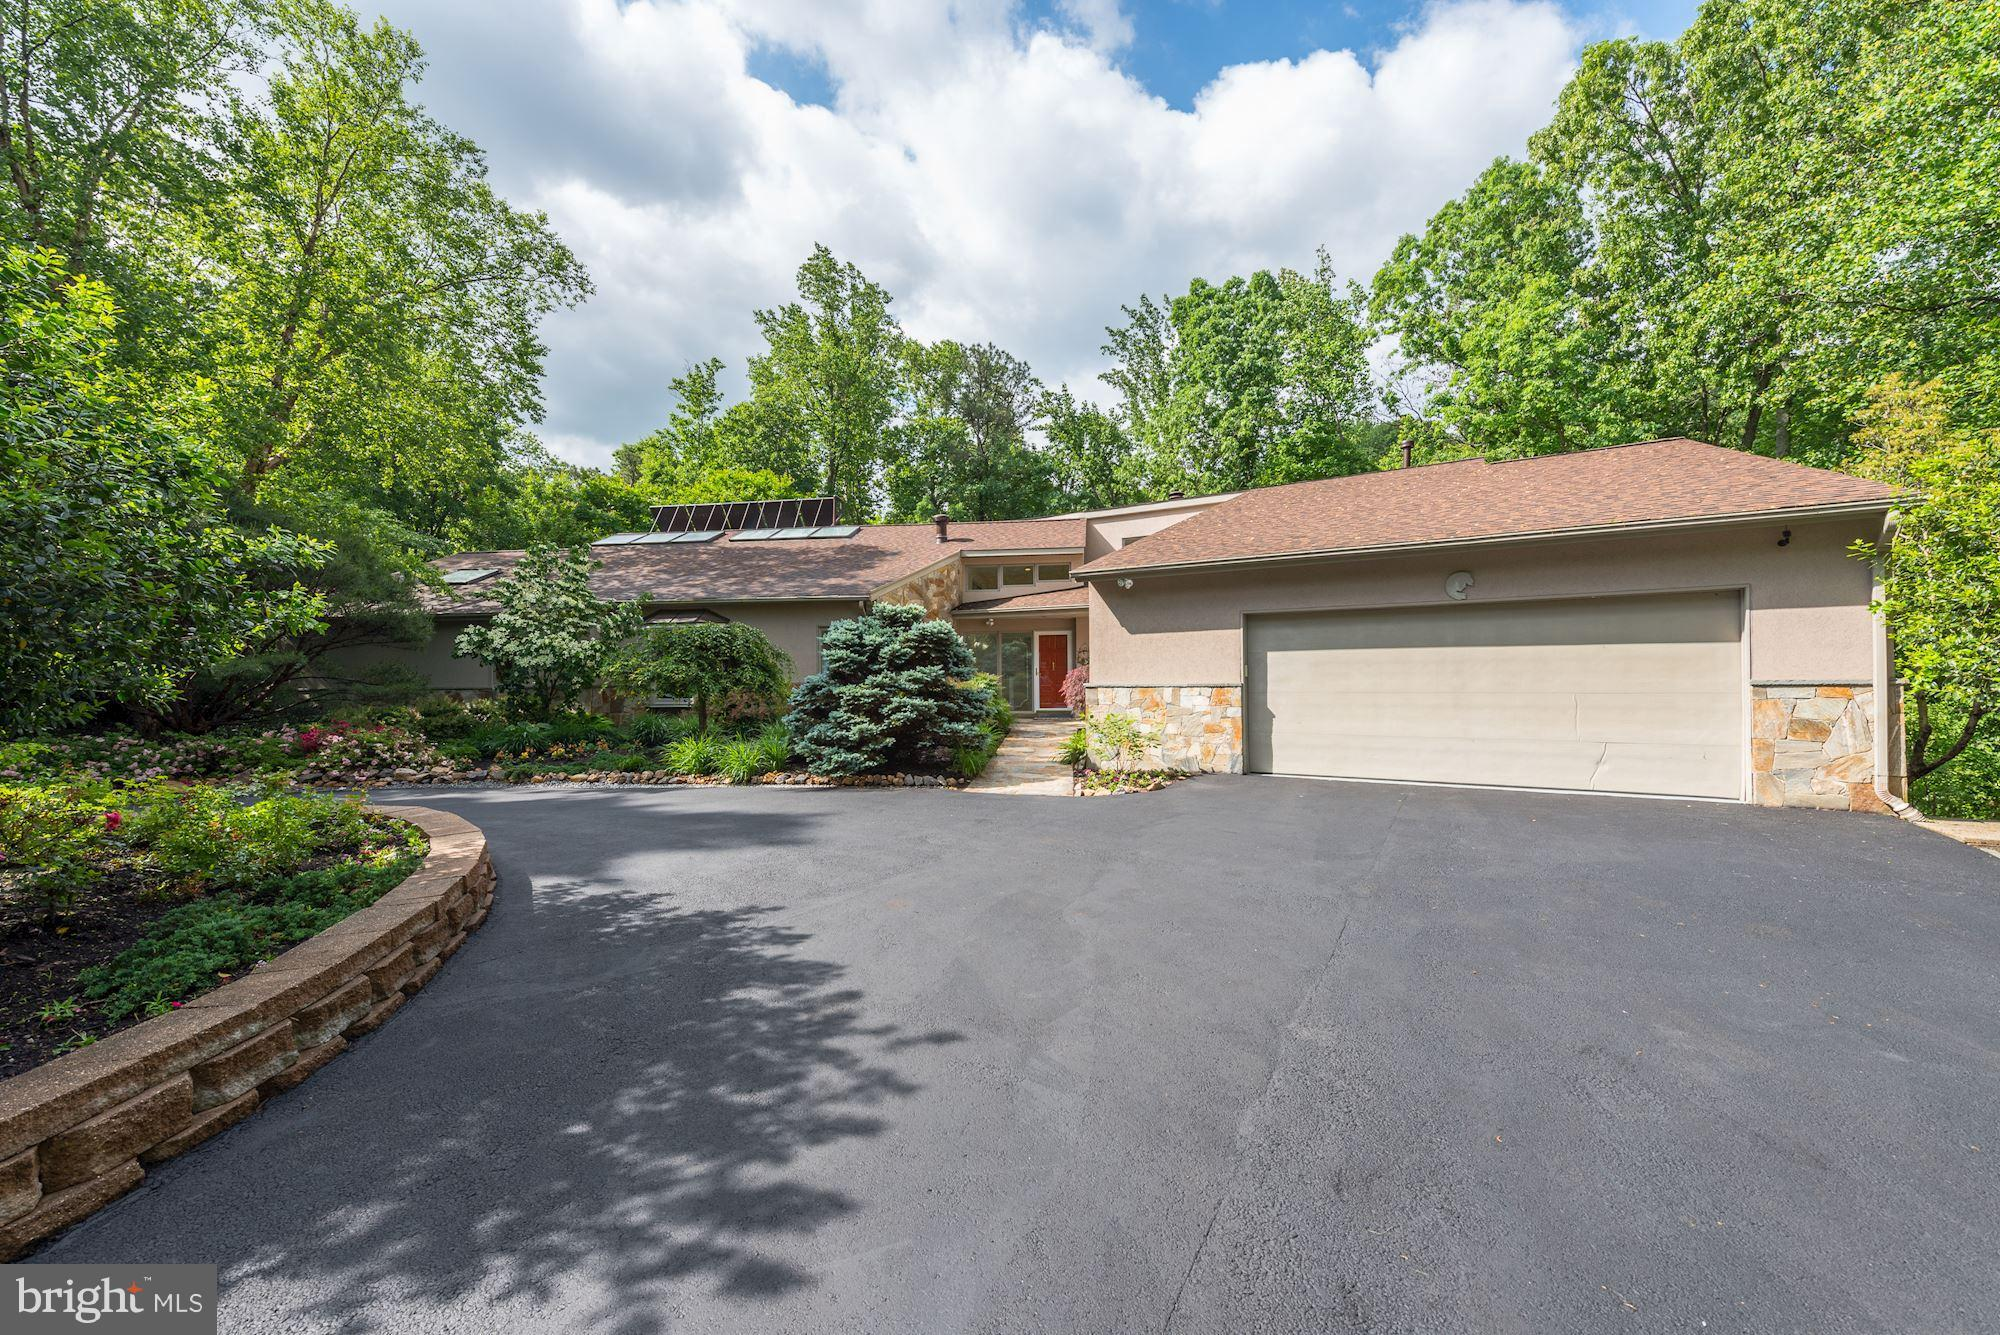 Incredible contemporary home privately tucked away on a secluded lot surrounded by lush parkland boasting nearly 6,000 sq. ft. features newer roof, hardwoods, gorgeous redone BAs, heated 9' x 40' indoor pool & sauna, countless windows w/tons of natural light & beautiful views, lovely kitchen w/stainless, granite, center island & new wide-plank floors, plus walk-out LL w/wet bar/wine tasting room!